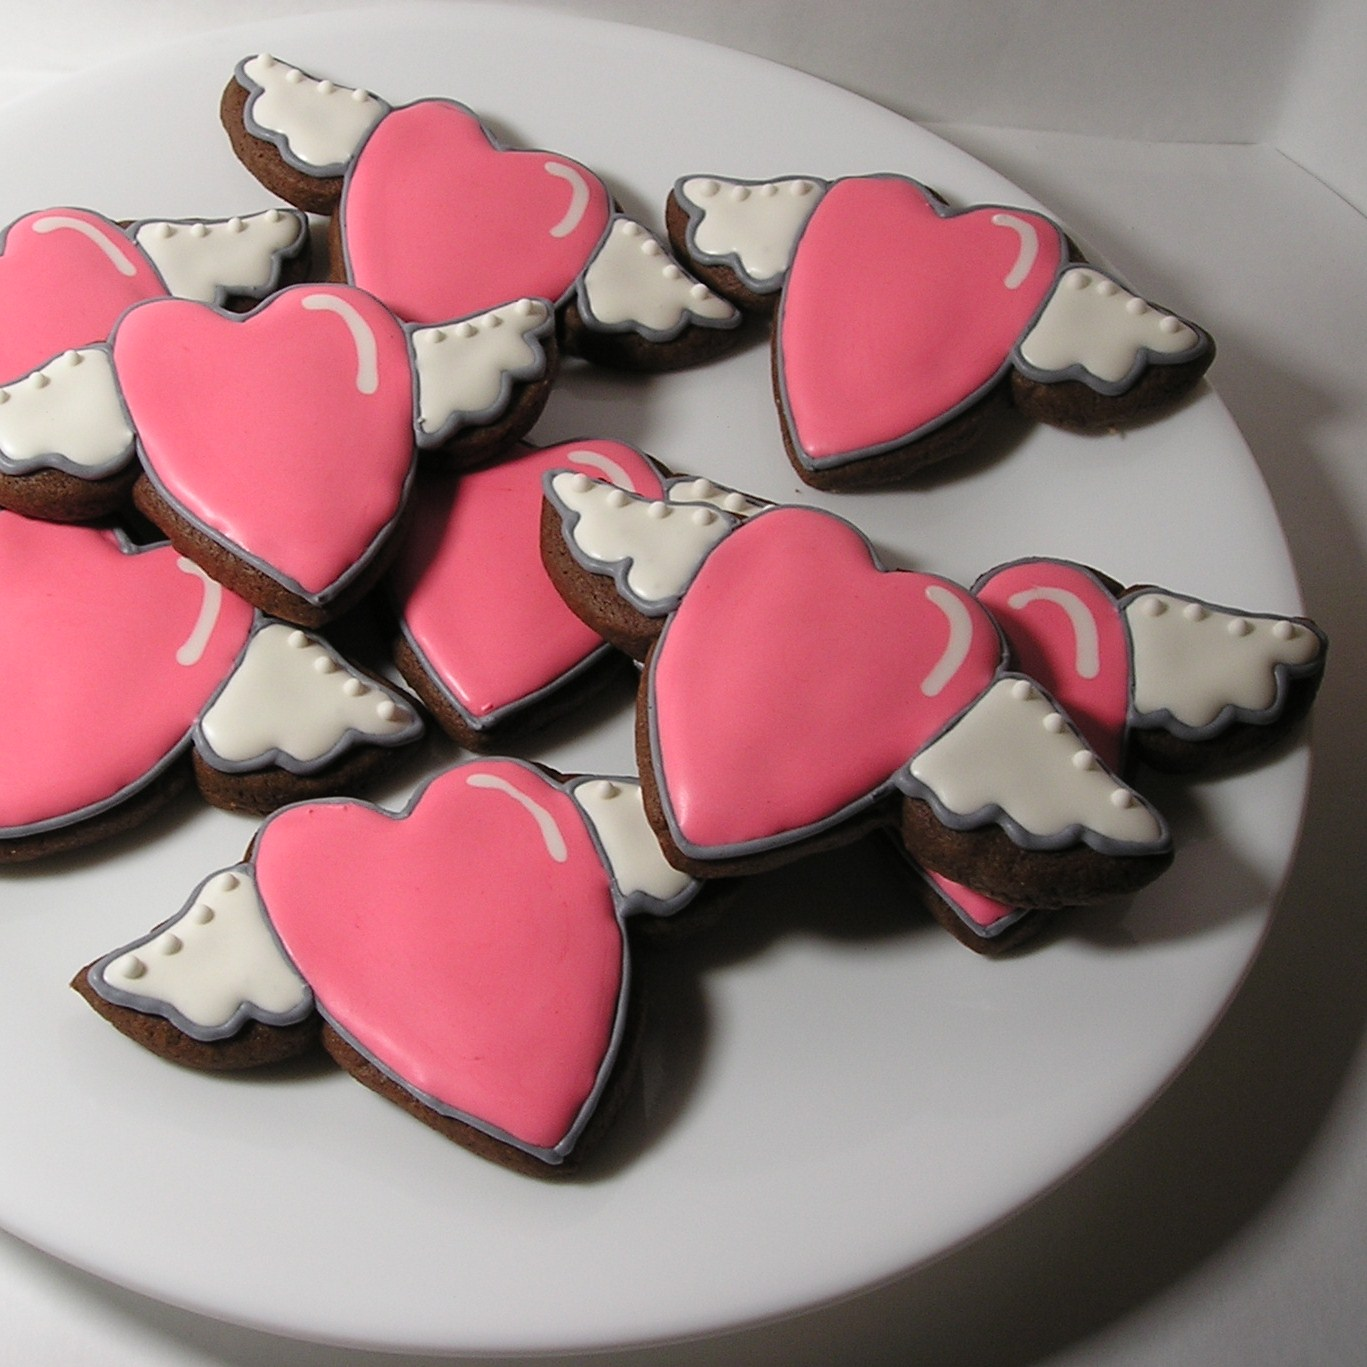 Soaring Winged Heart Valentine Chocolate Sugar Cookies